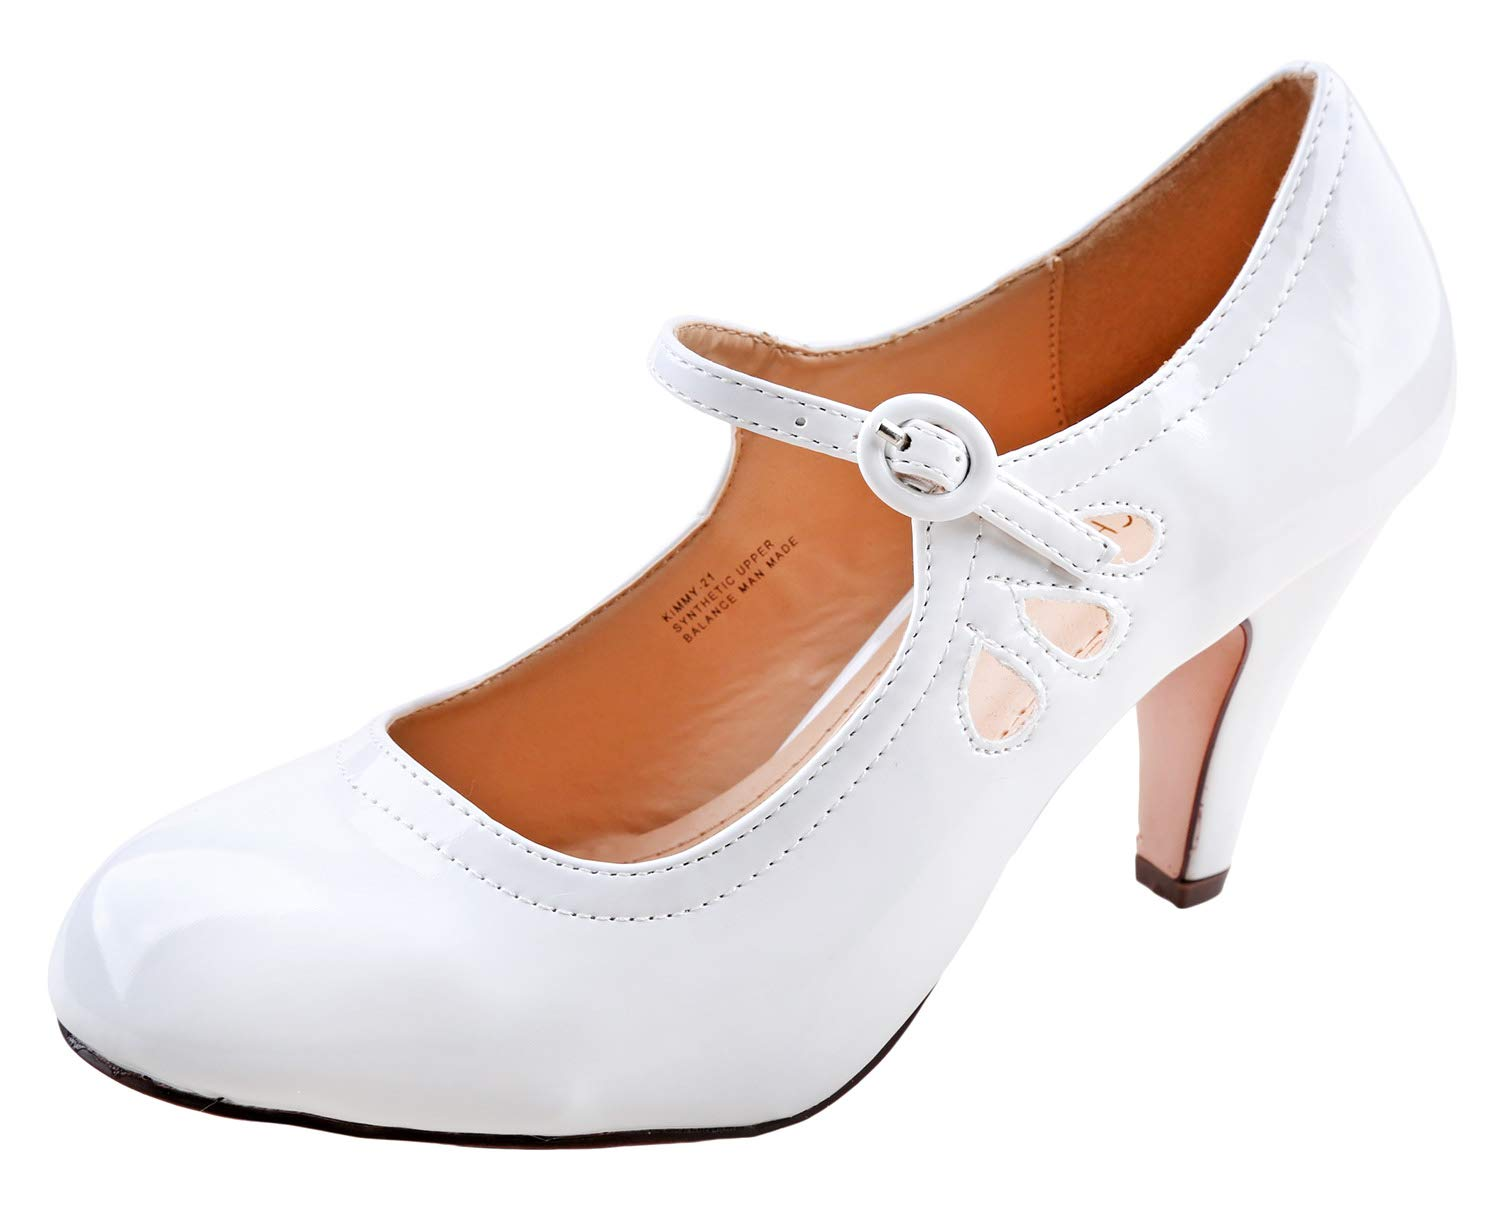 Chase & Chloe Womens Kimmy-21 Regular Heeled Shoes White Pat 5.5 by Chase & Chloe